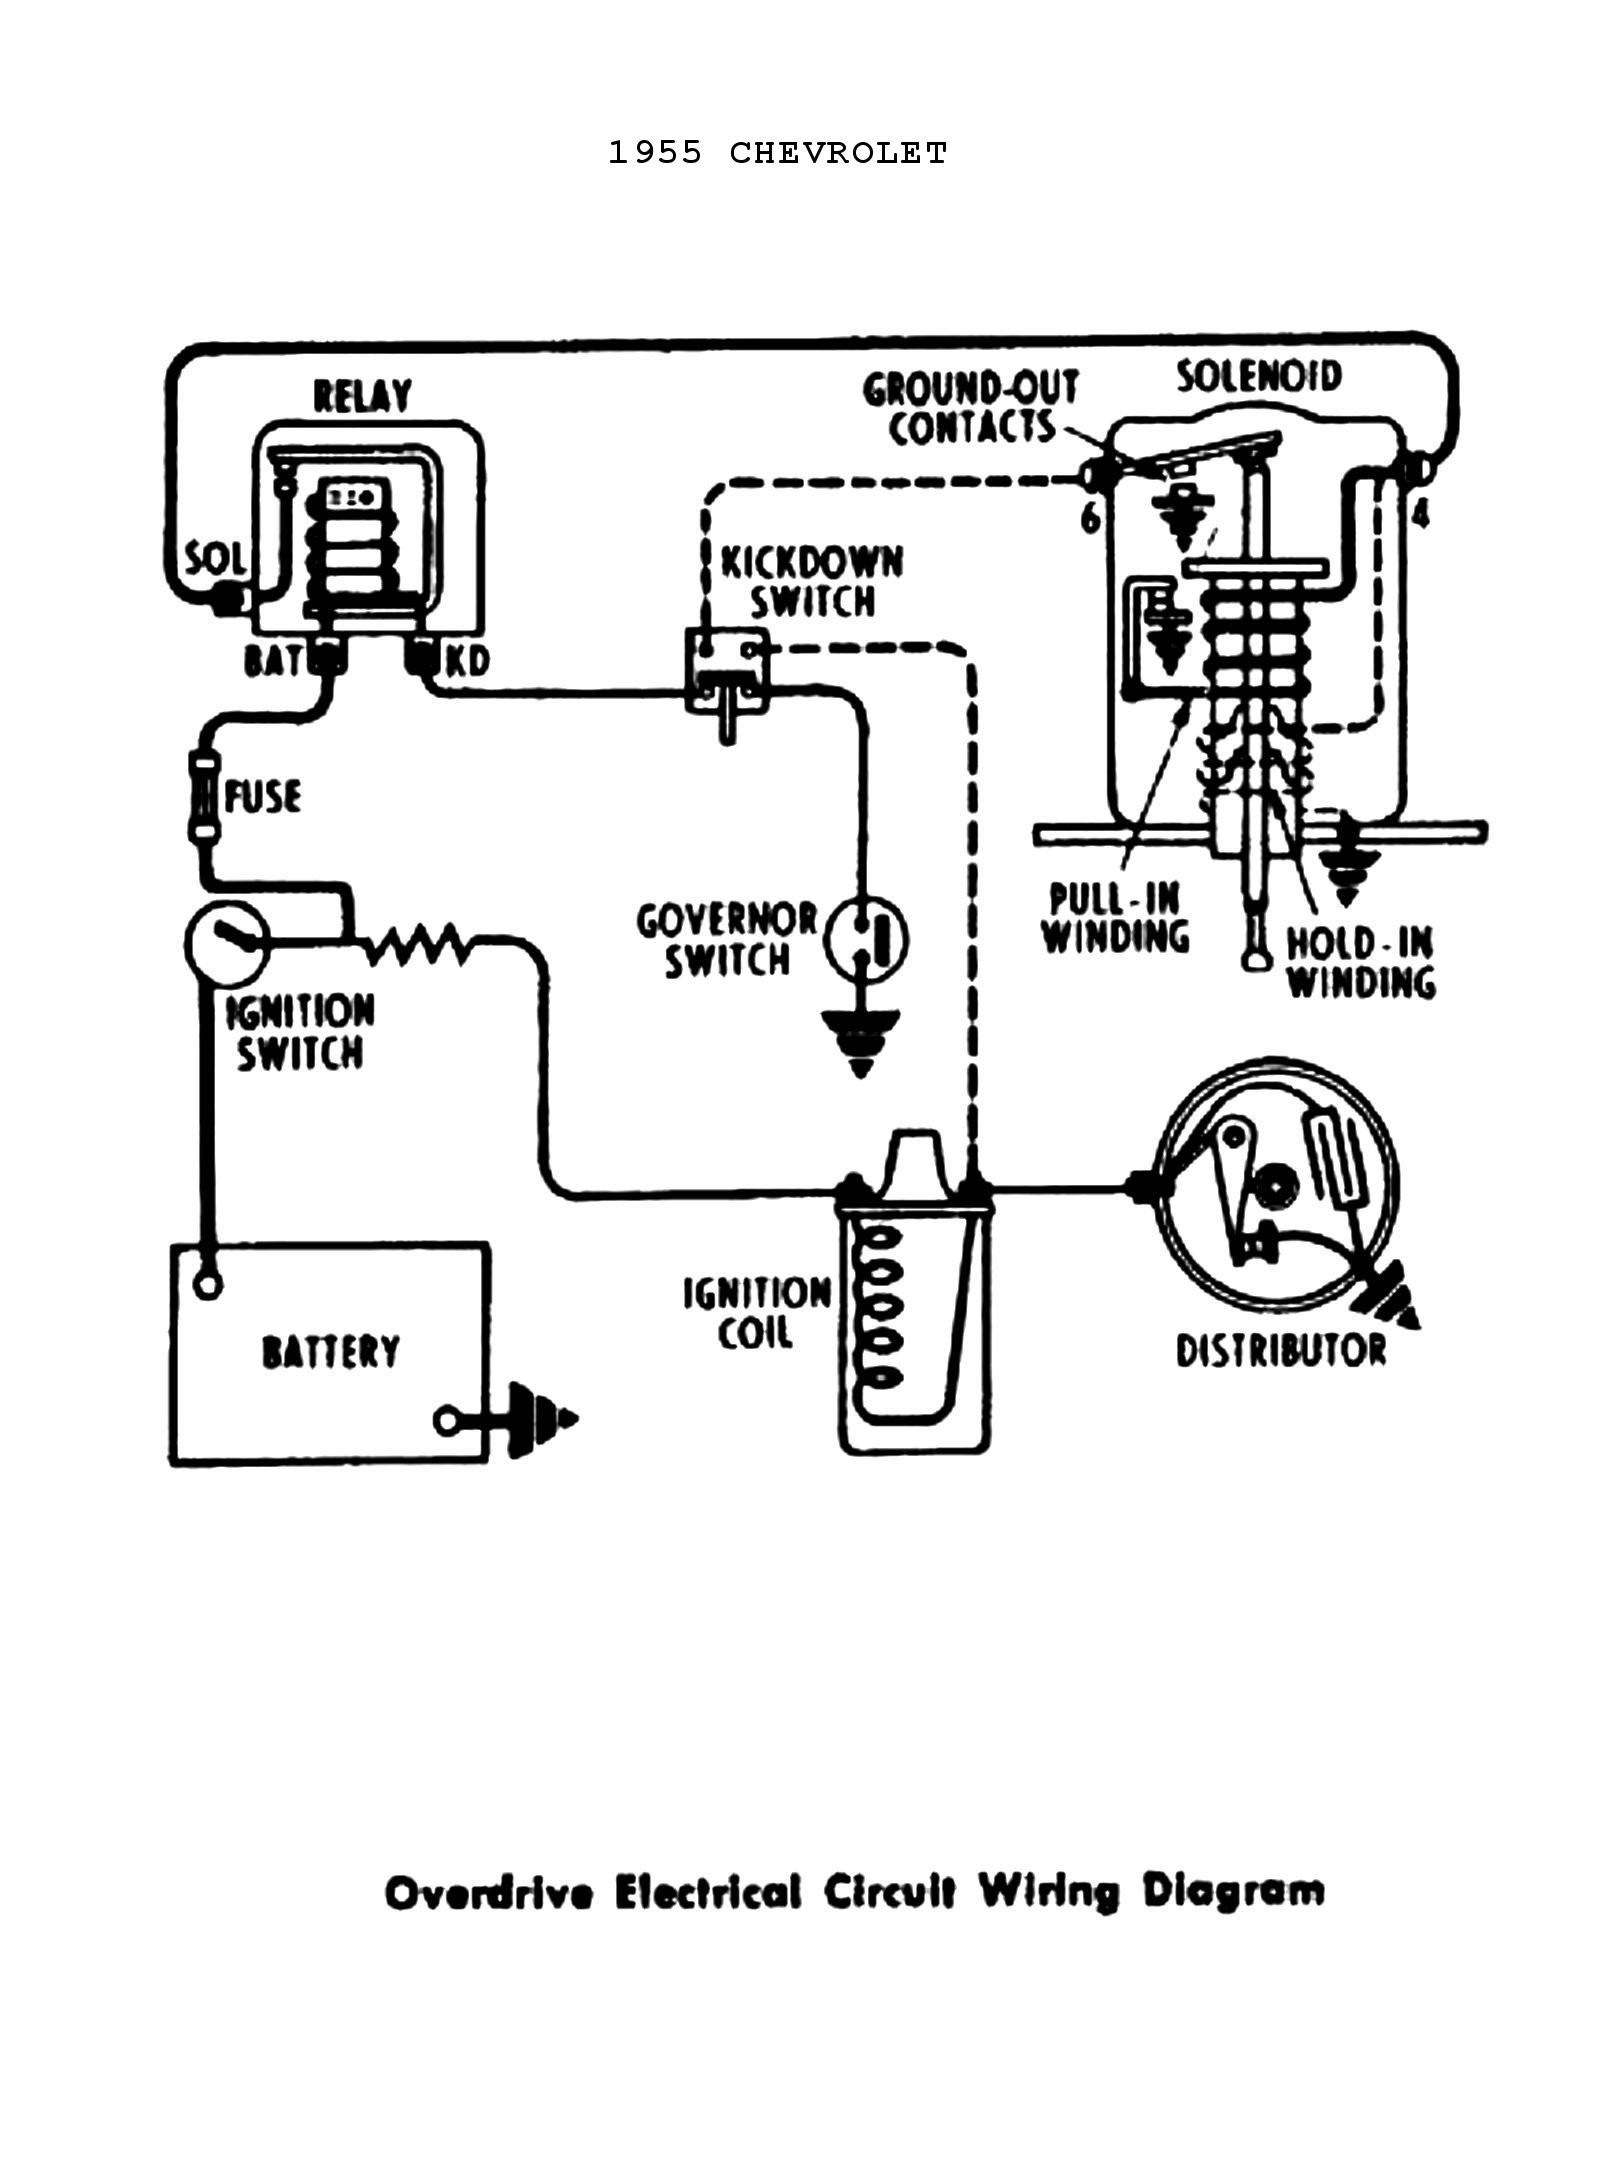 Car Electrical System Diagram Chevy Wiring Diagrams Of Car Electrical System Diagram Diesel Generator Control Panel Wiring Diagram